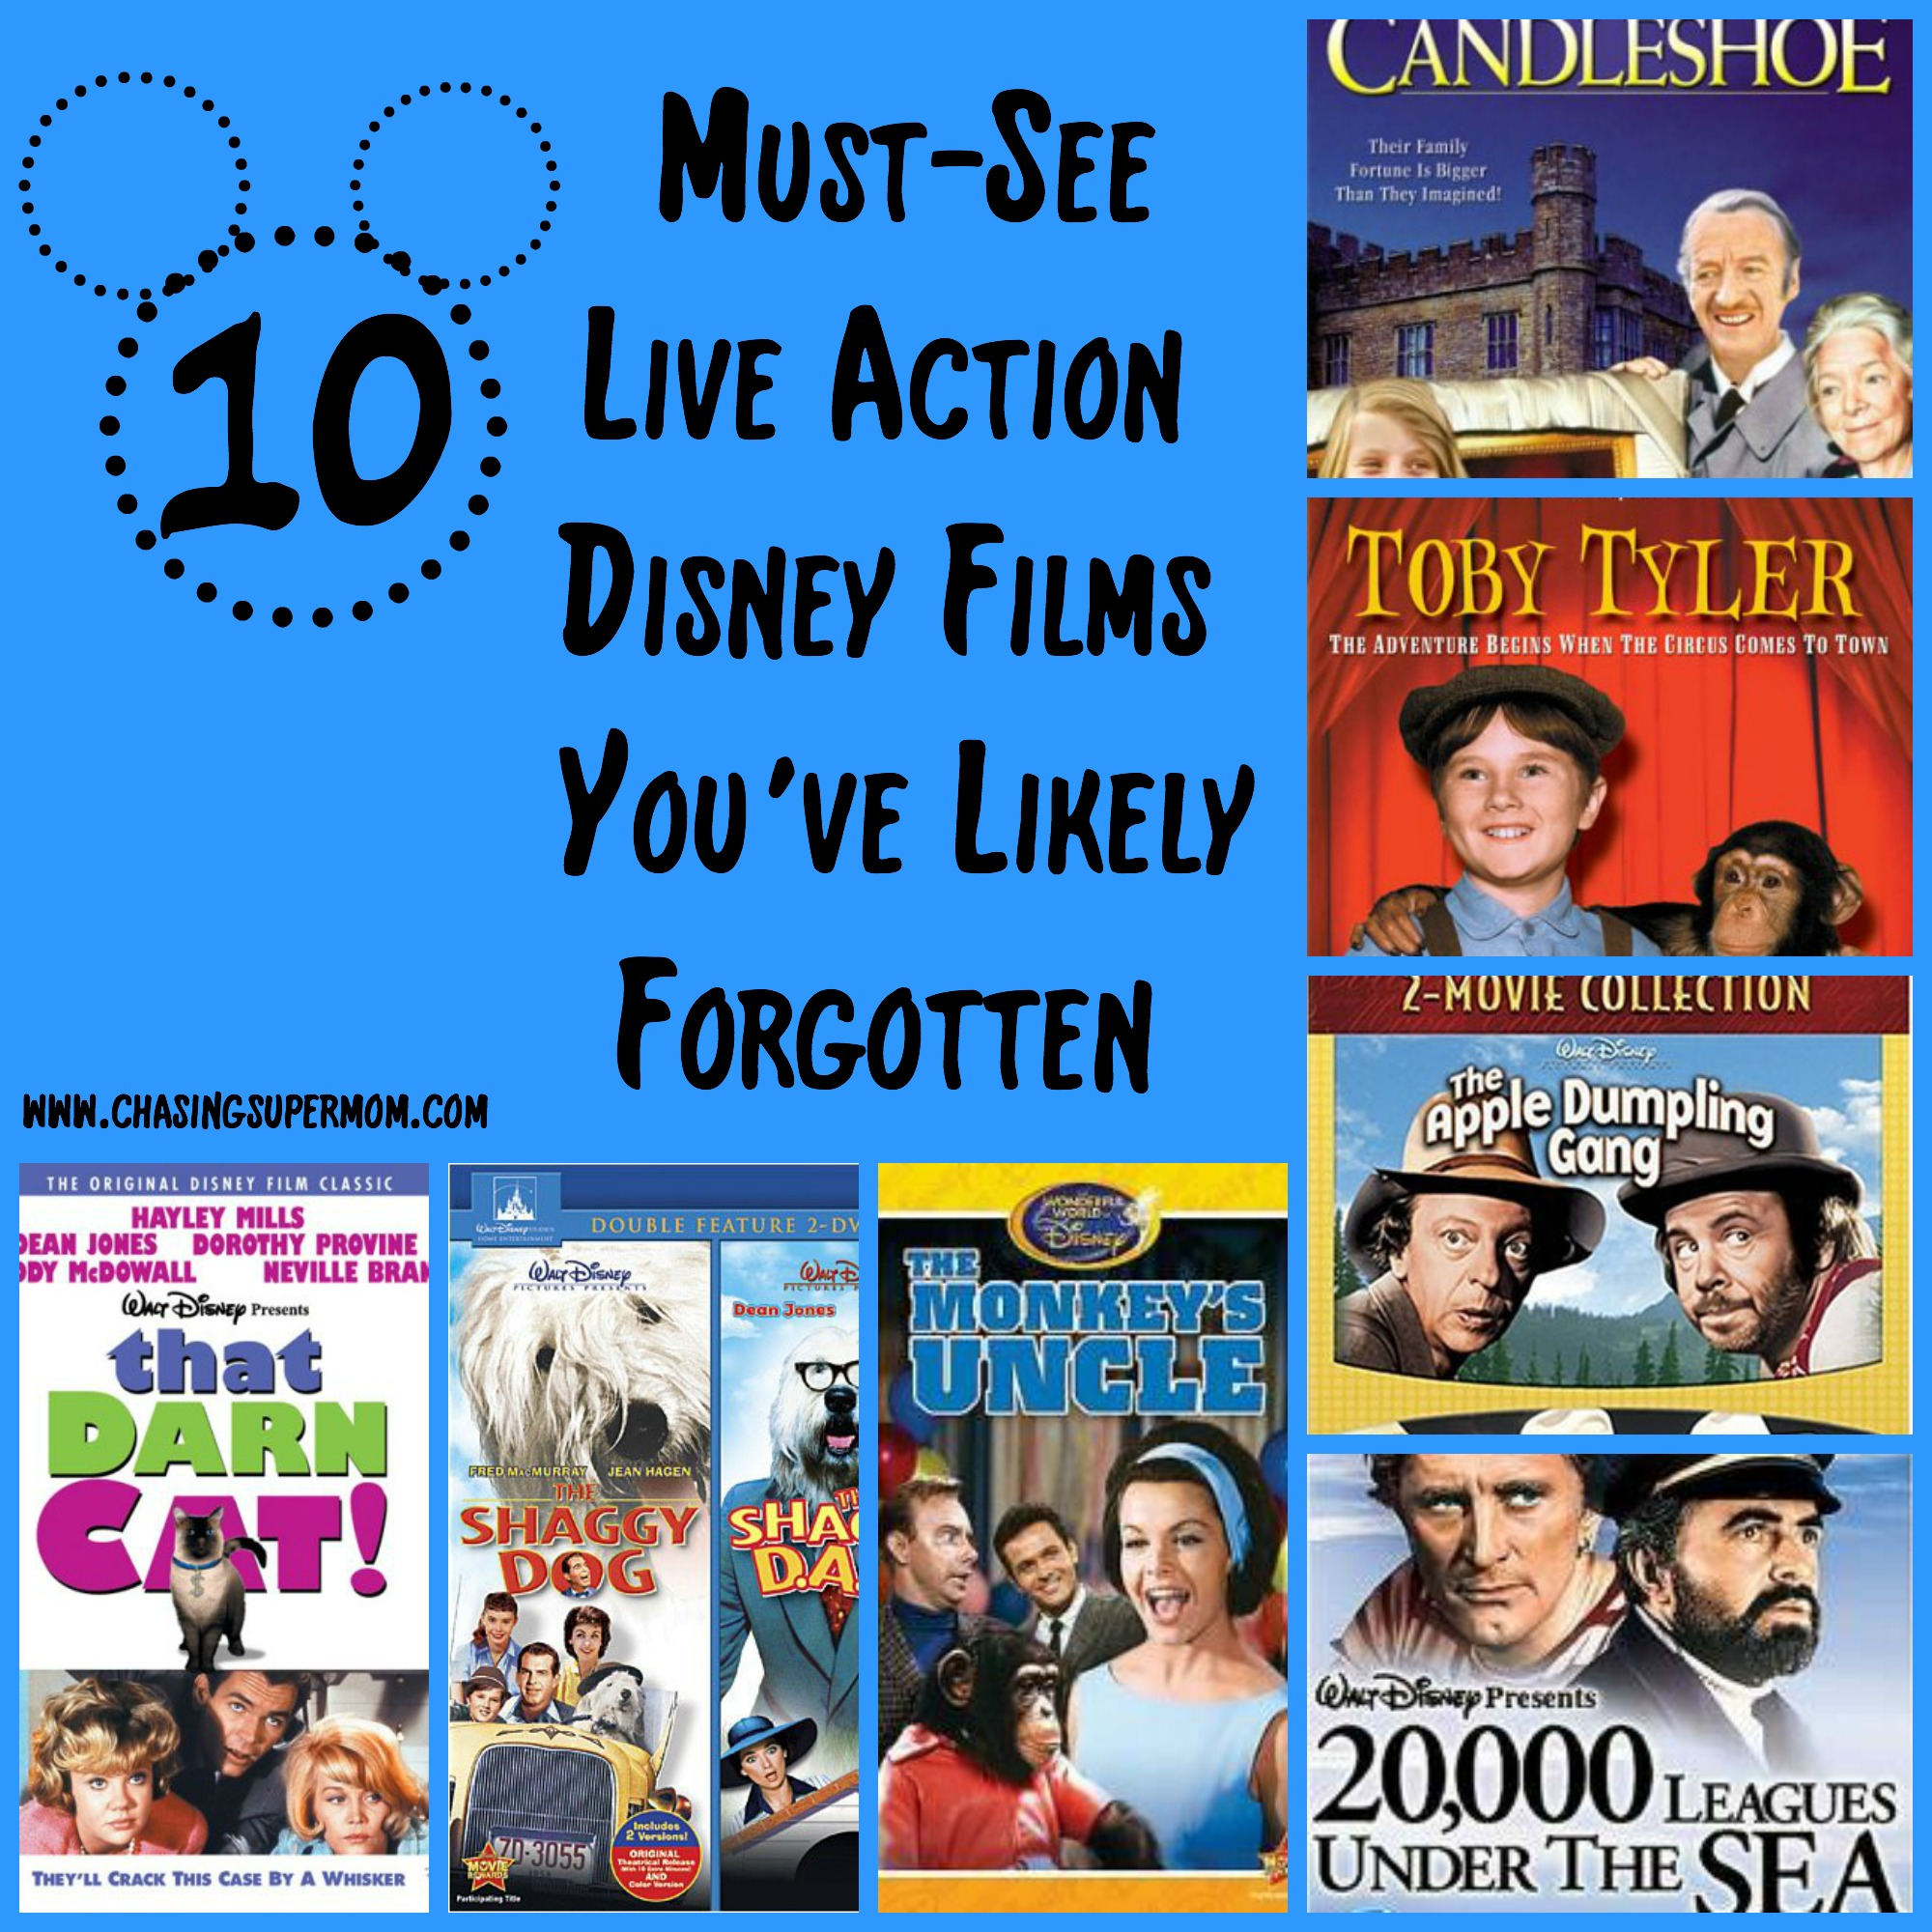 10 Must-See Live Action Disney Films You've Likely Forgotten